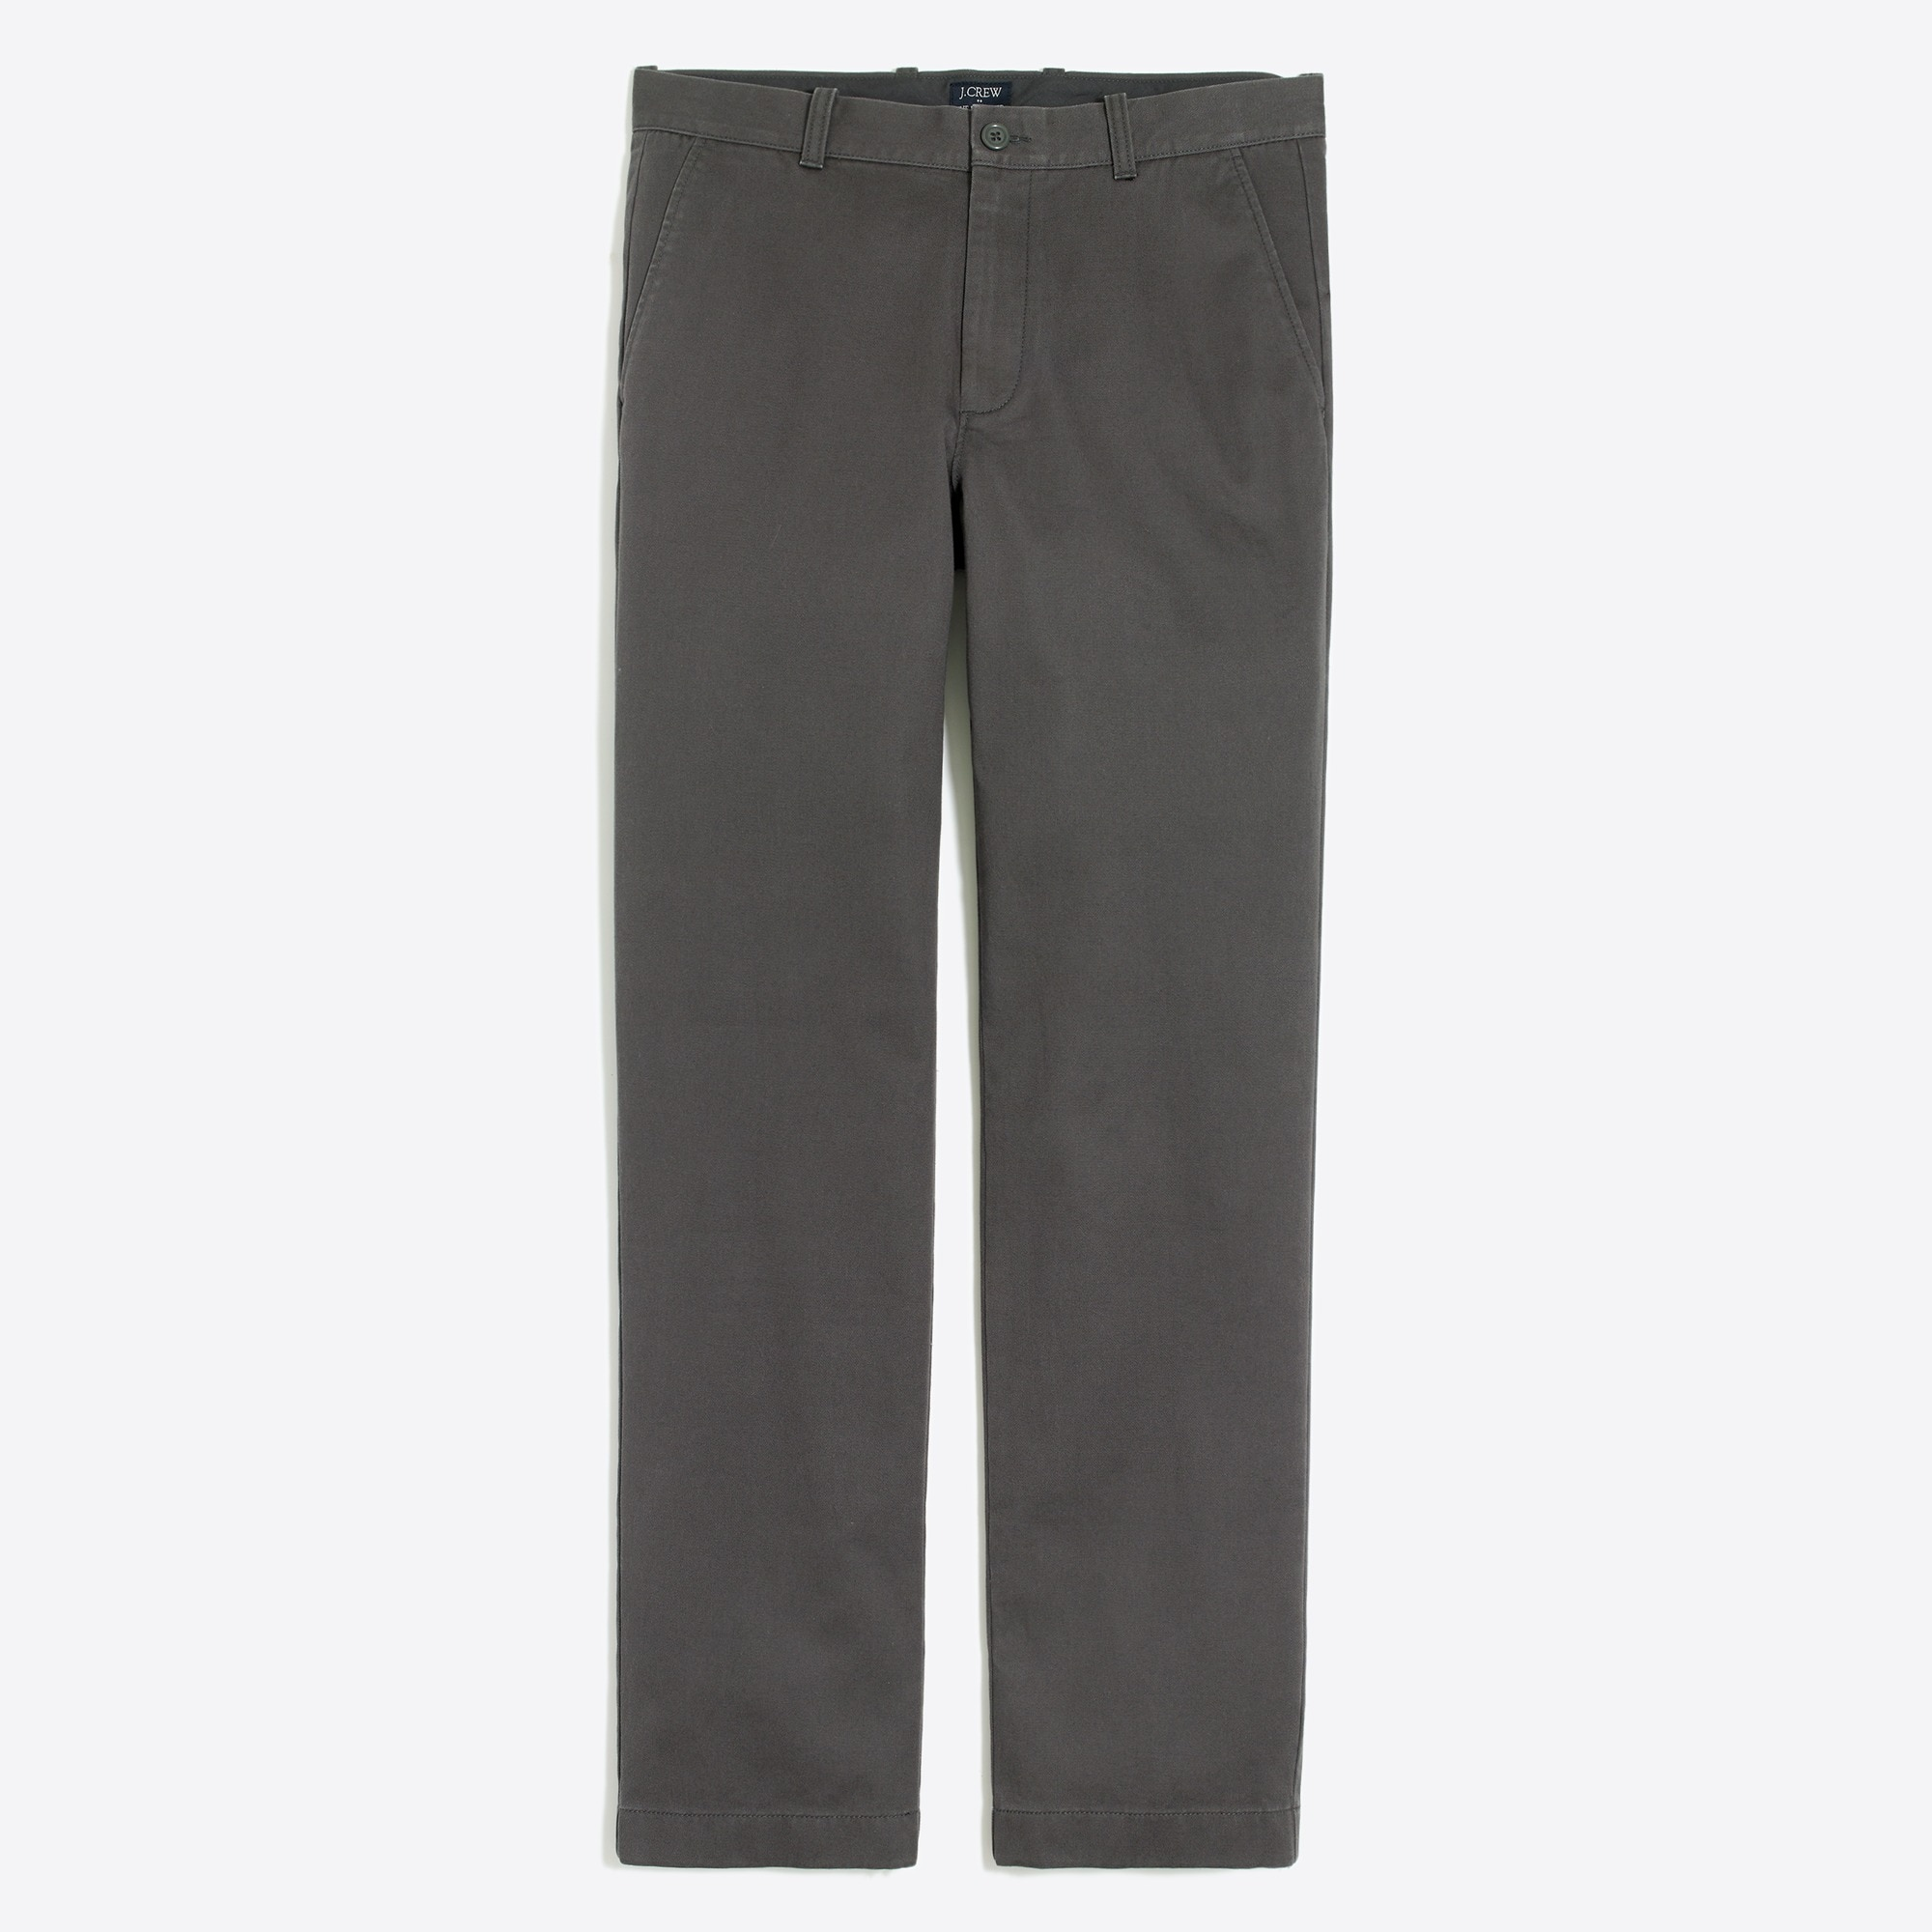 Bleecker athletic-fit broken-in chino